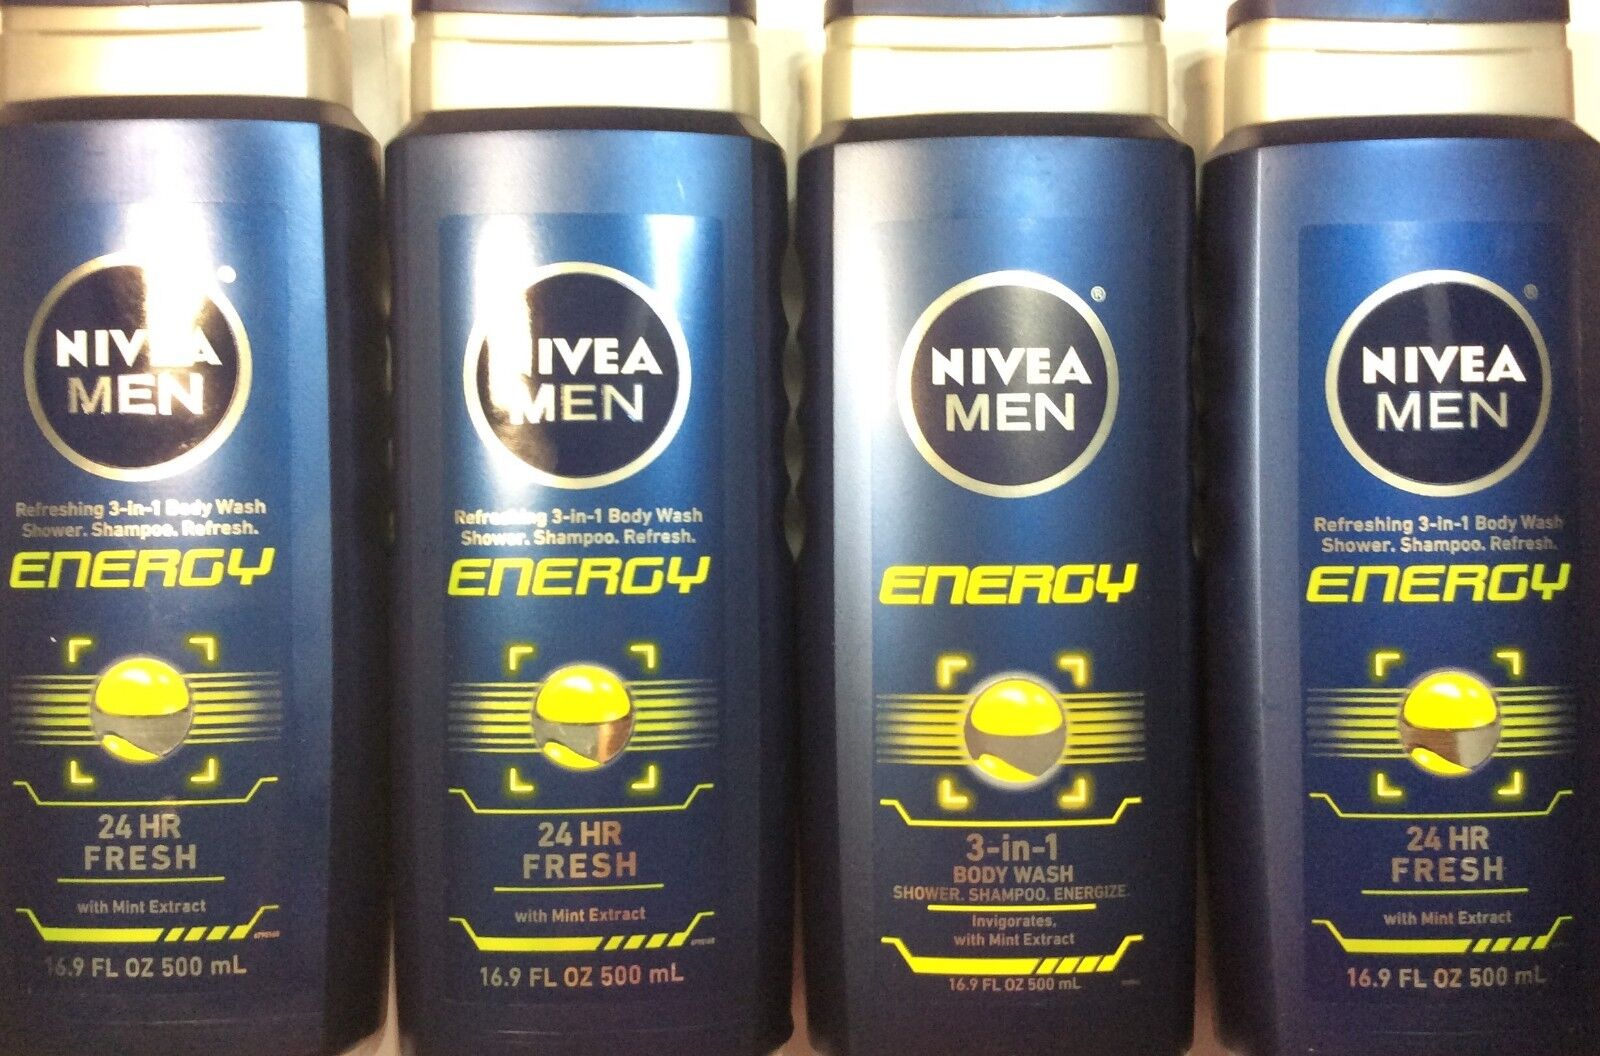 NIVEA Men® Energy 3-in-1 Body Wash 16.9 fl. oz.